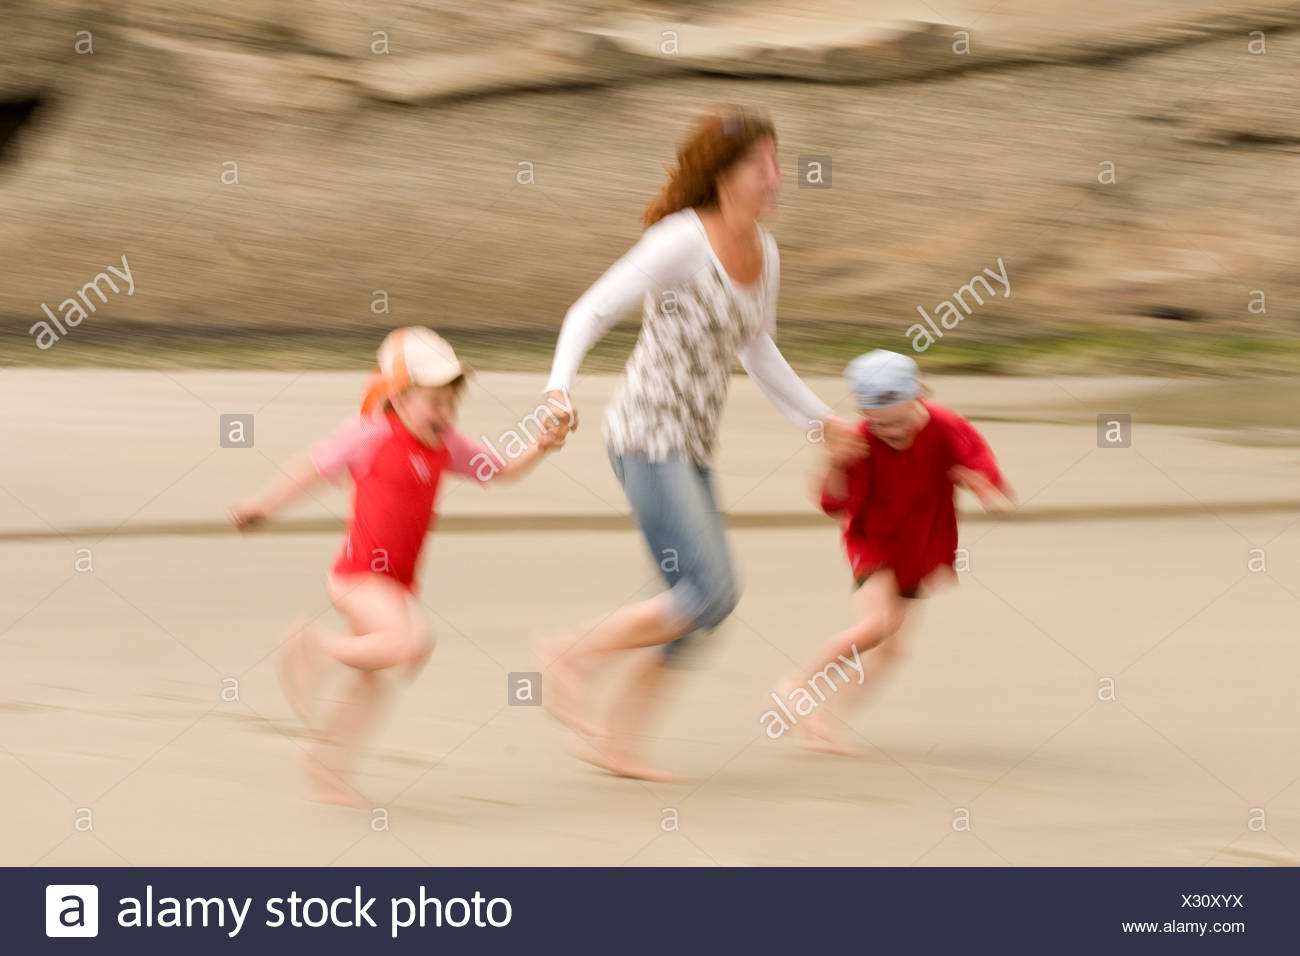 New Zealand, Cape Farewell, Woman with children (4-5) (6-7) on the beach, having fun Stock Photo